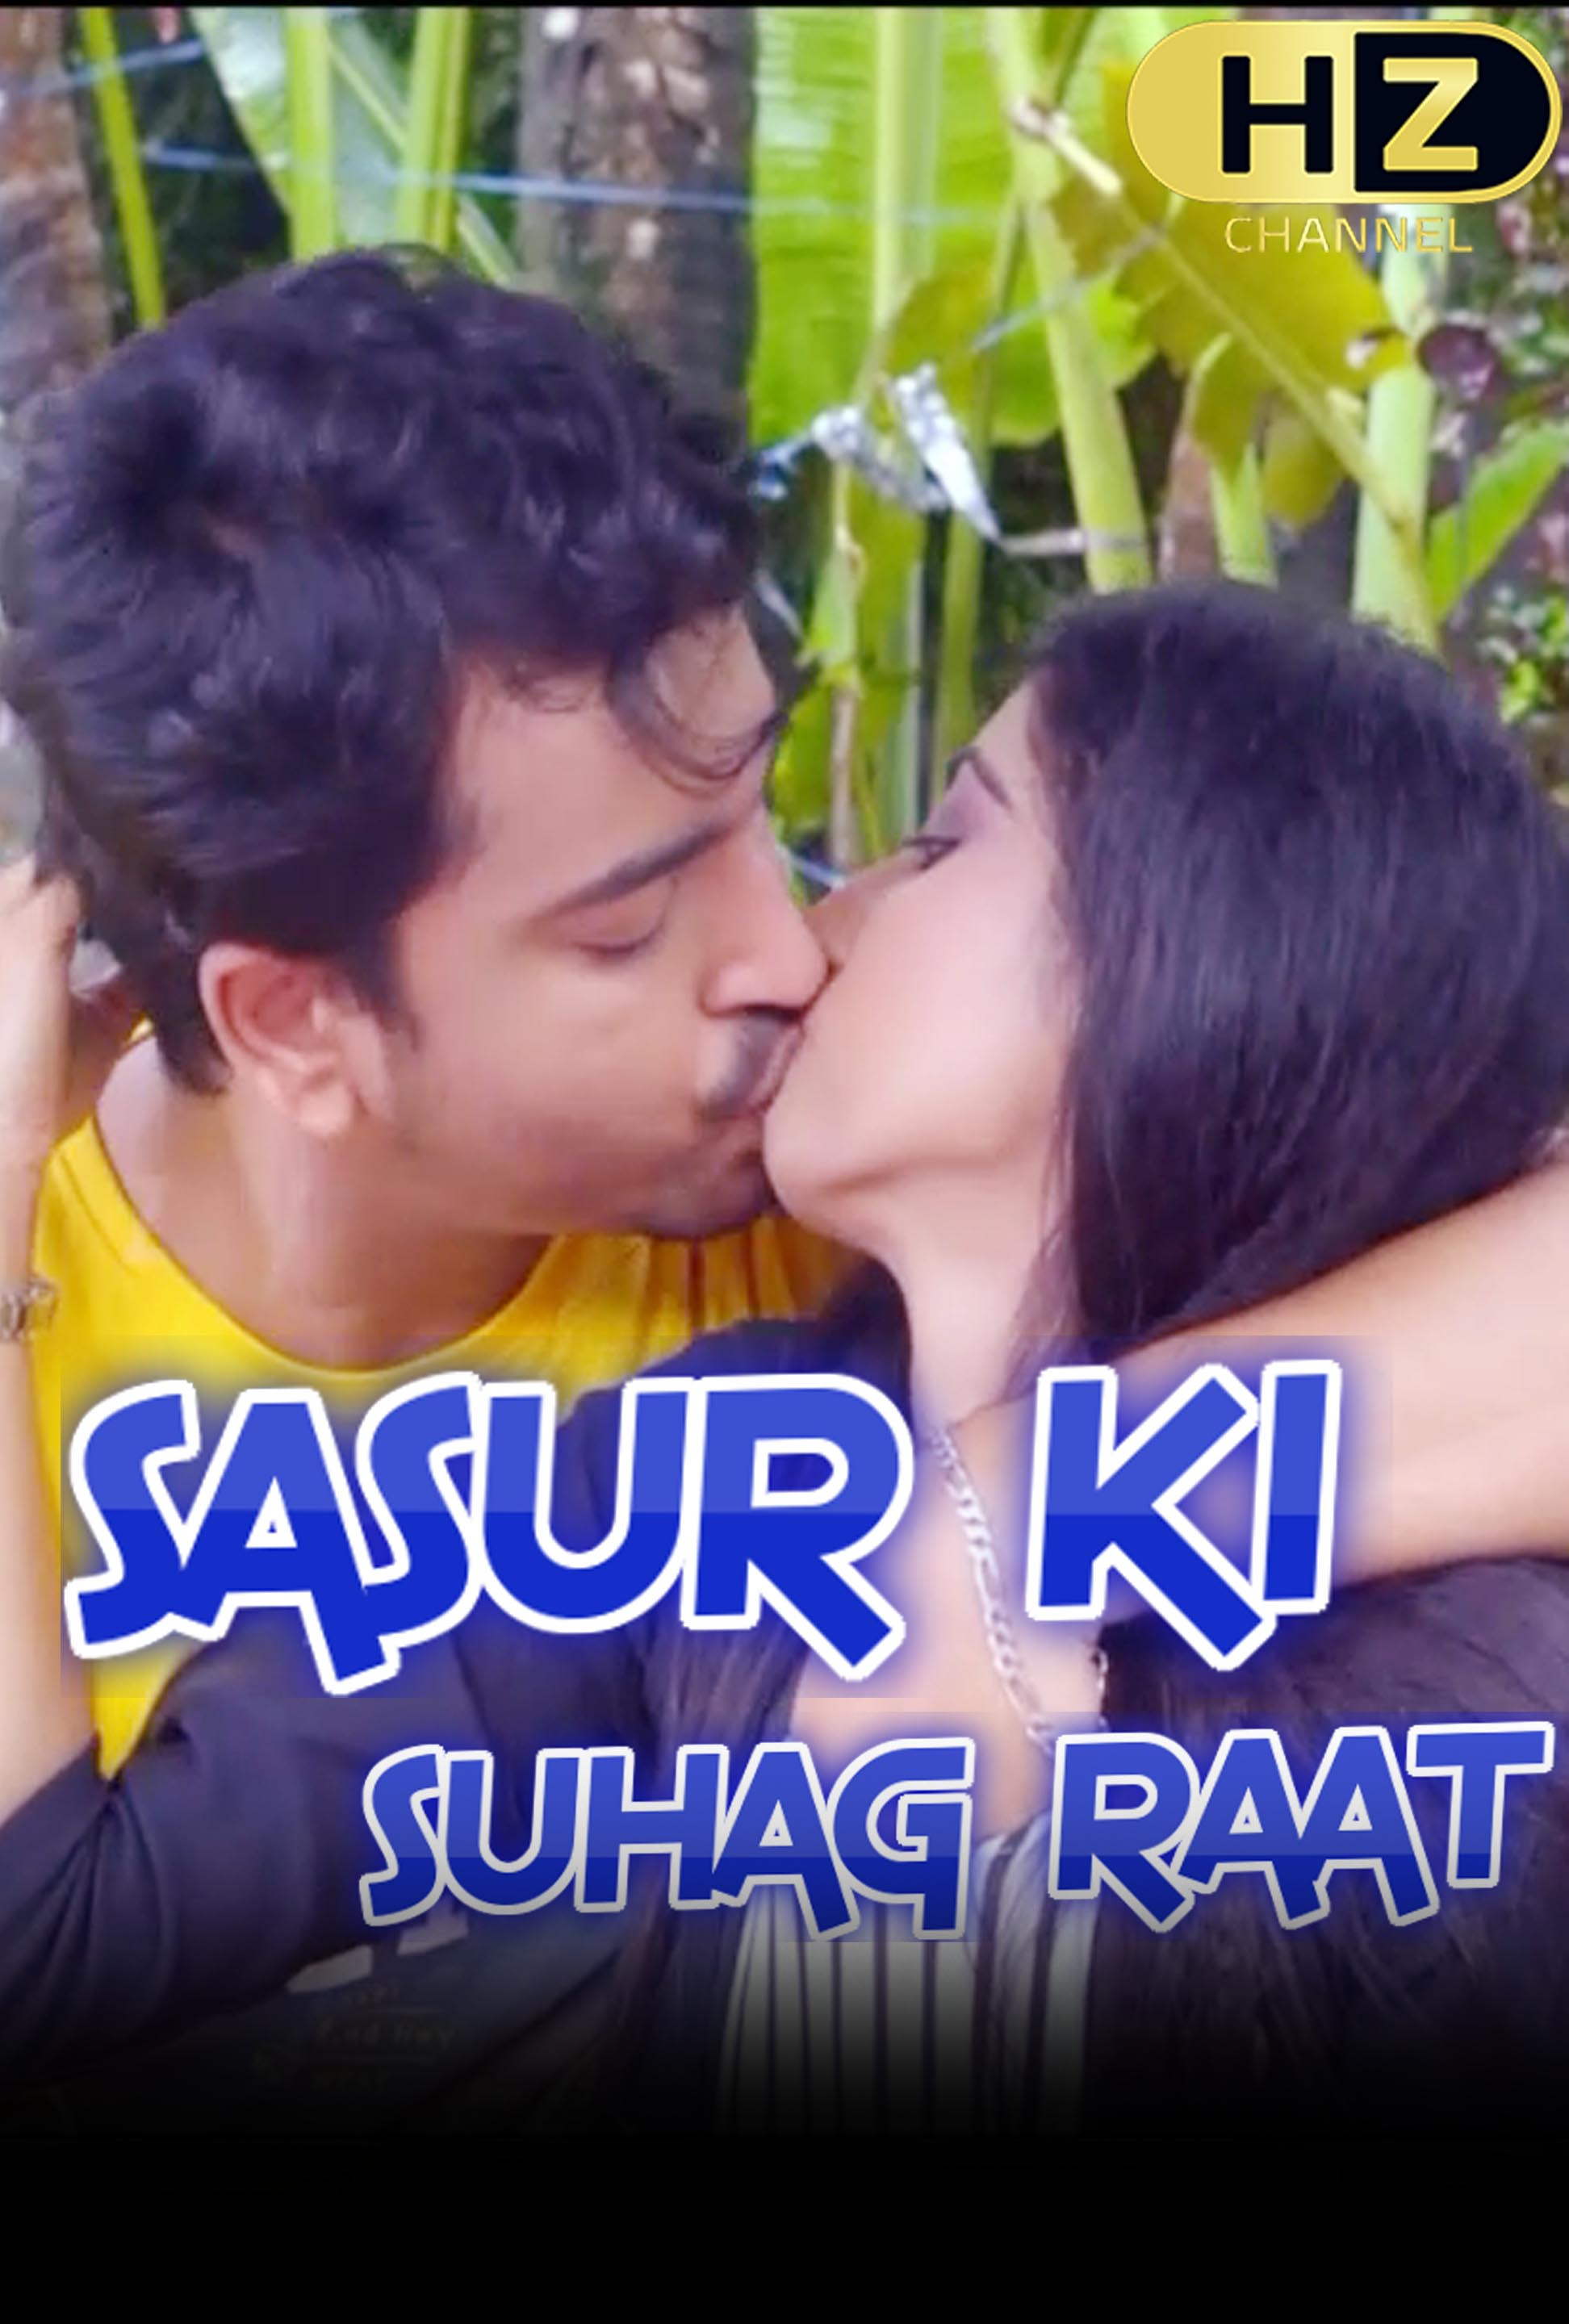 18+ Sasur Ki Suhagrat 2020 S01E02 HootzyChannel Hindi Web Series 720p HDRip 150MB x264 AAC